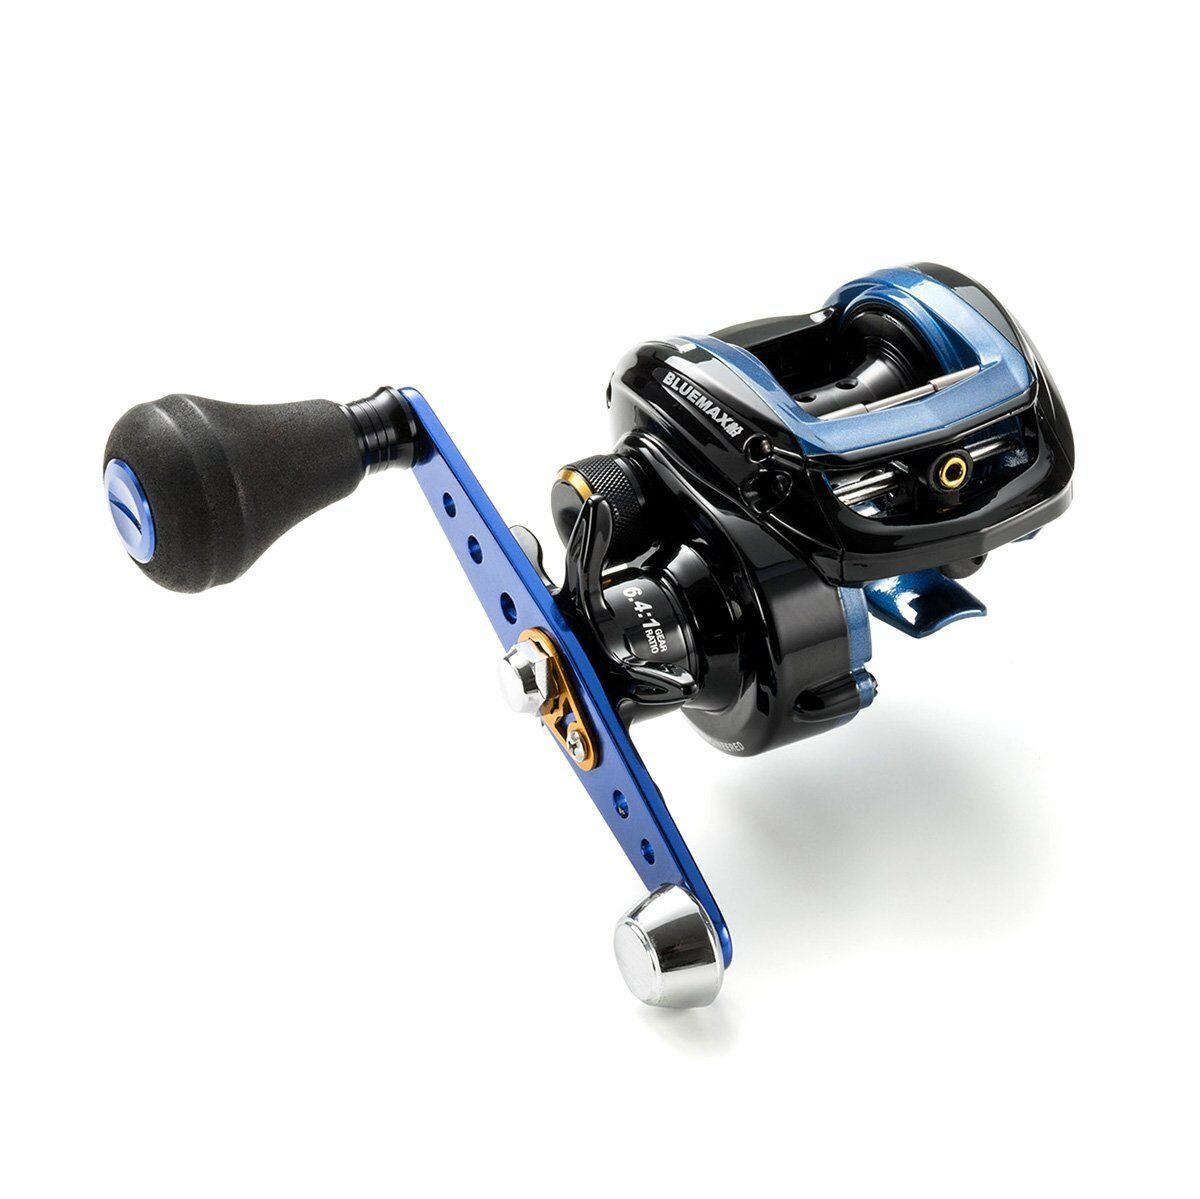 Abu Garcia 056589 Reel blumax Fune3 Right Handle